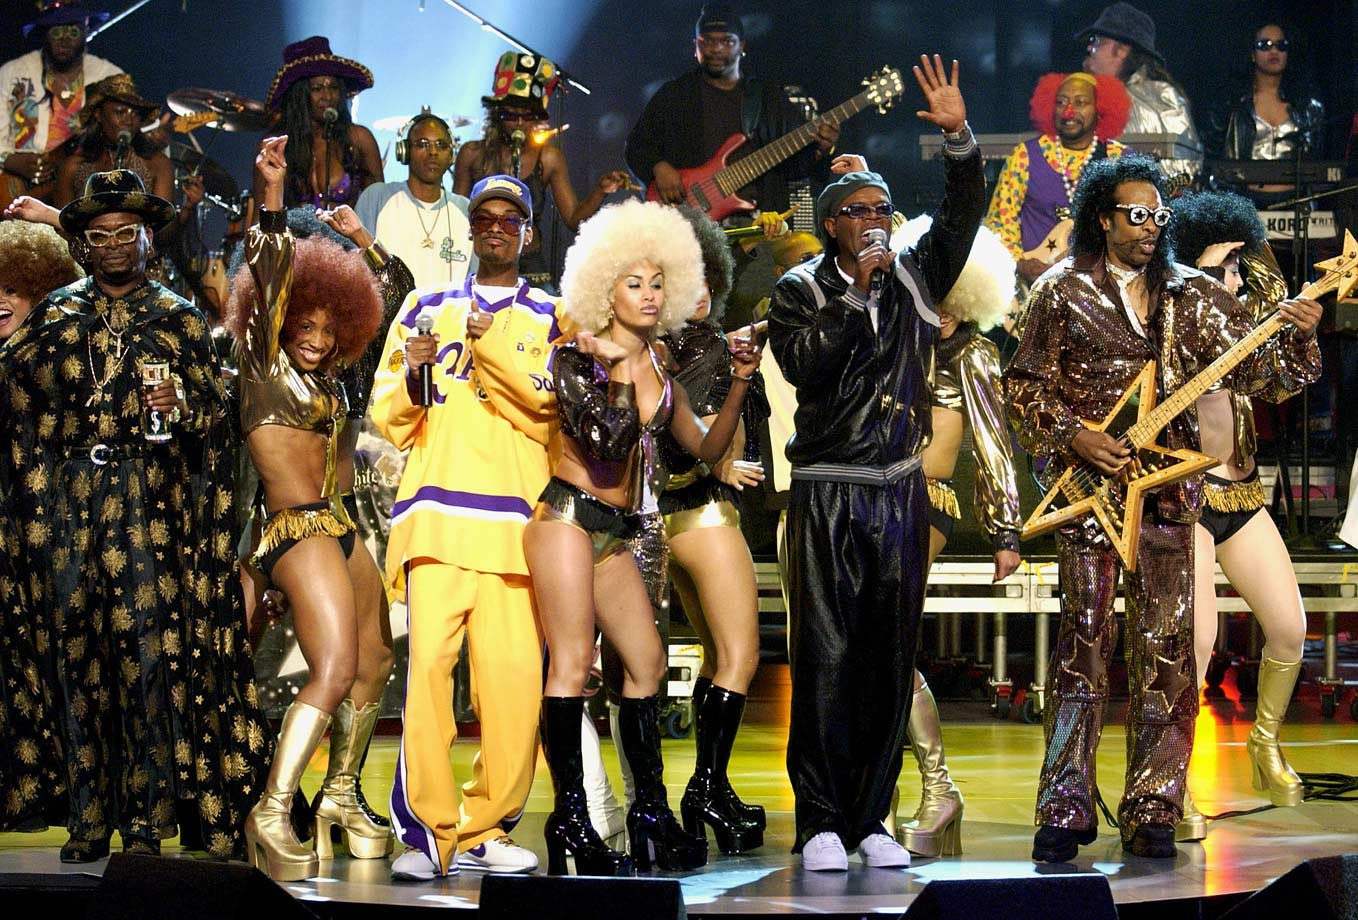 Snoop Dogg, Samuel L. Jackson and Bootsy Collins perform during the ESPY Awards on July 10, 2002 at The Kodak Theater in Hollywood, Calif.